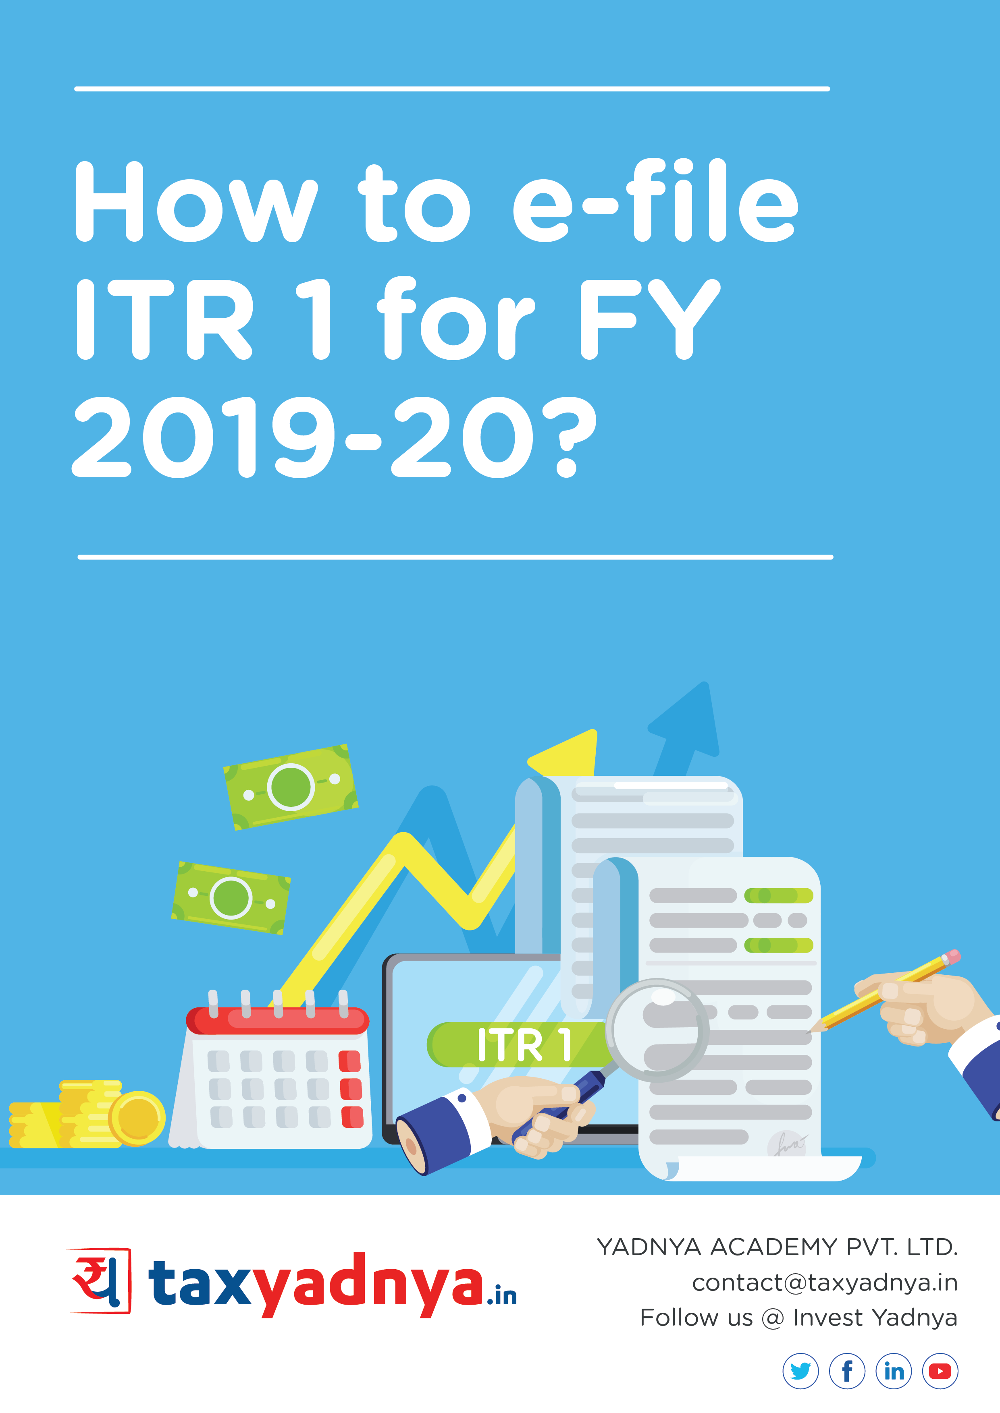 This e-book contains a guide as to how to file income tax return using ITR1 form for FY 2019-20. This self-help guide helps in complete ITR1 filing process through the income tax website. ✔ Detailed Research ✔ Quality Reports